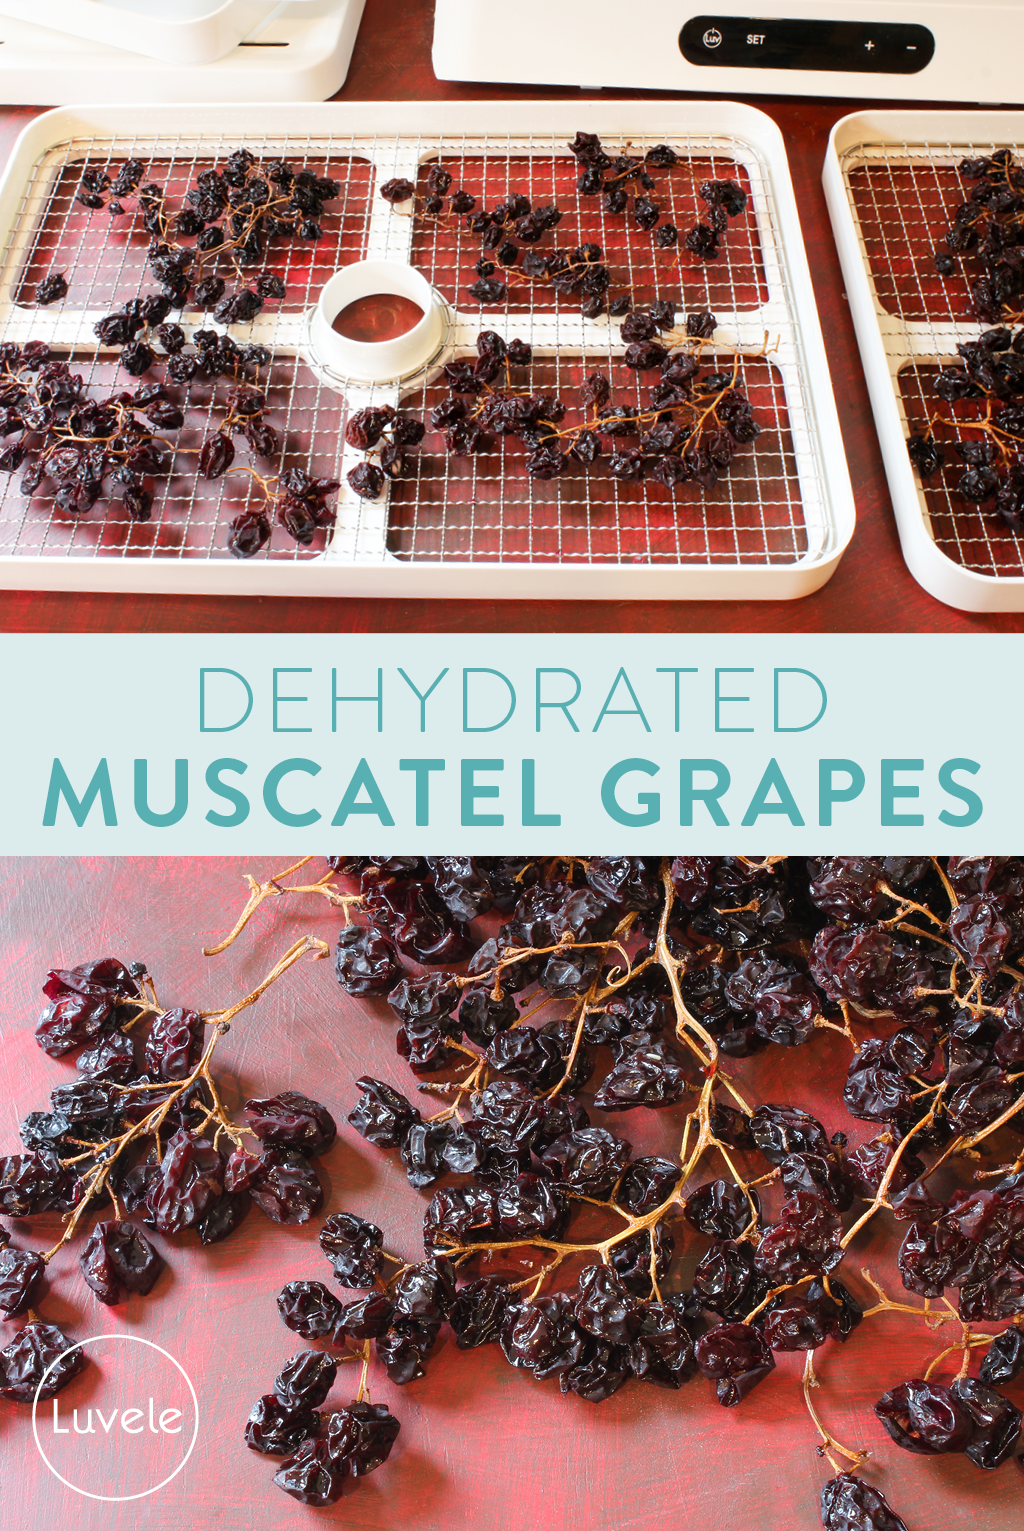 dehydrating muscatel grapes